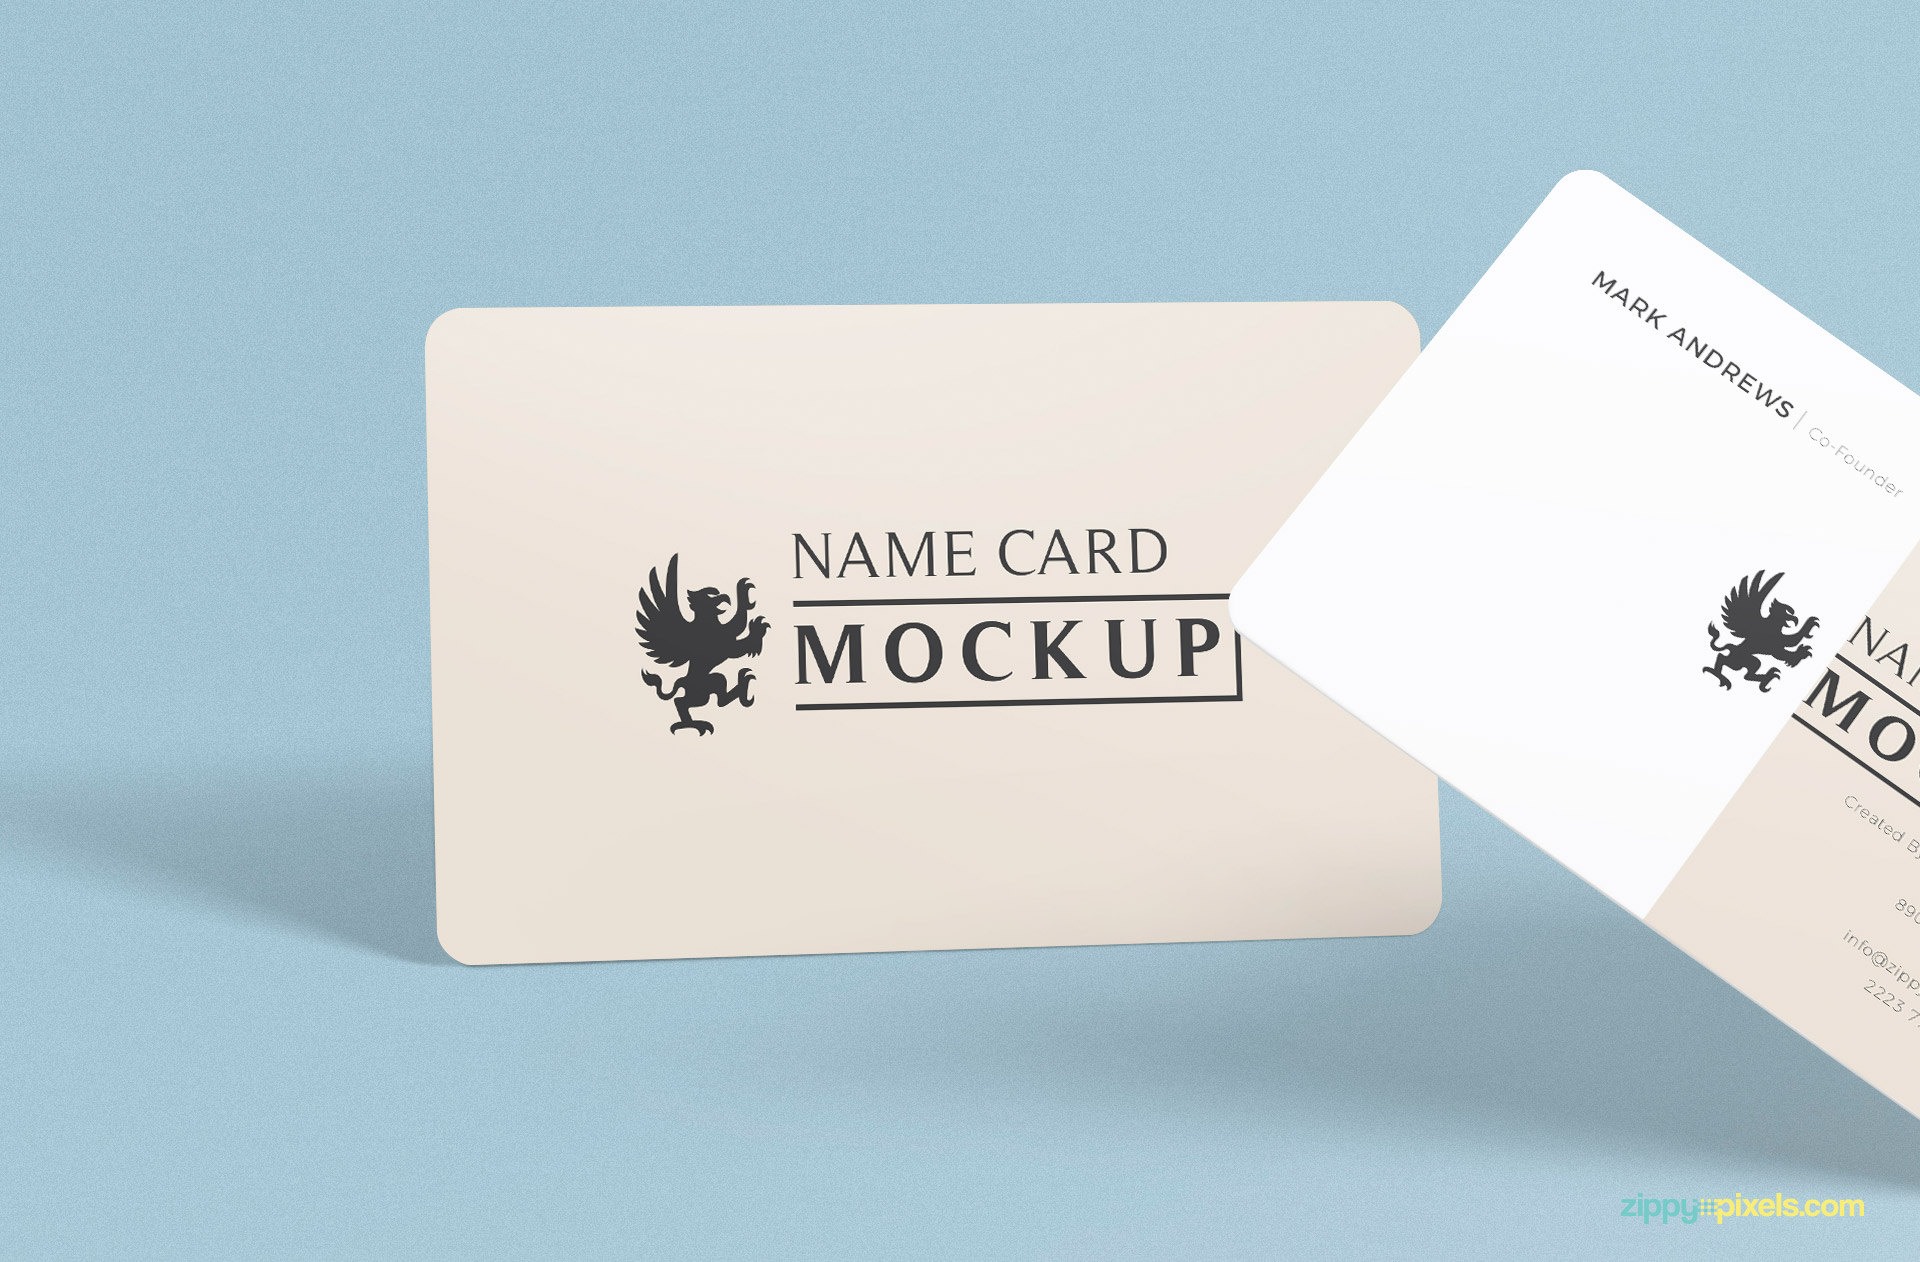 Exquisite Free Name Card Mockup PSD | ZippyPixels